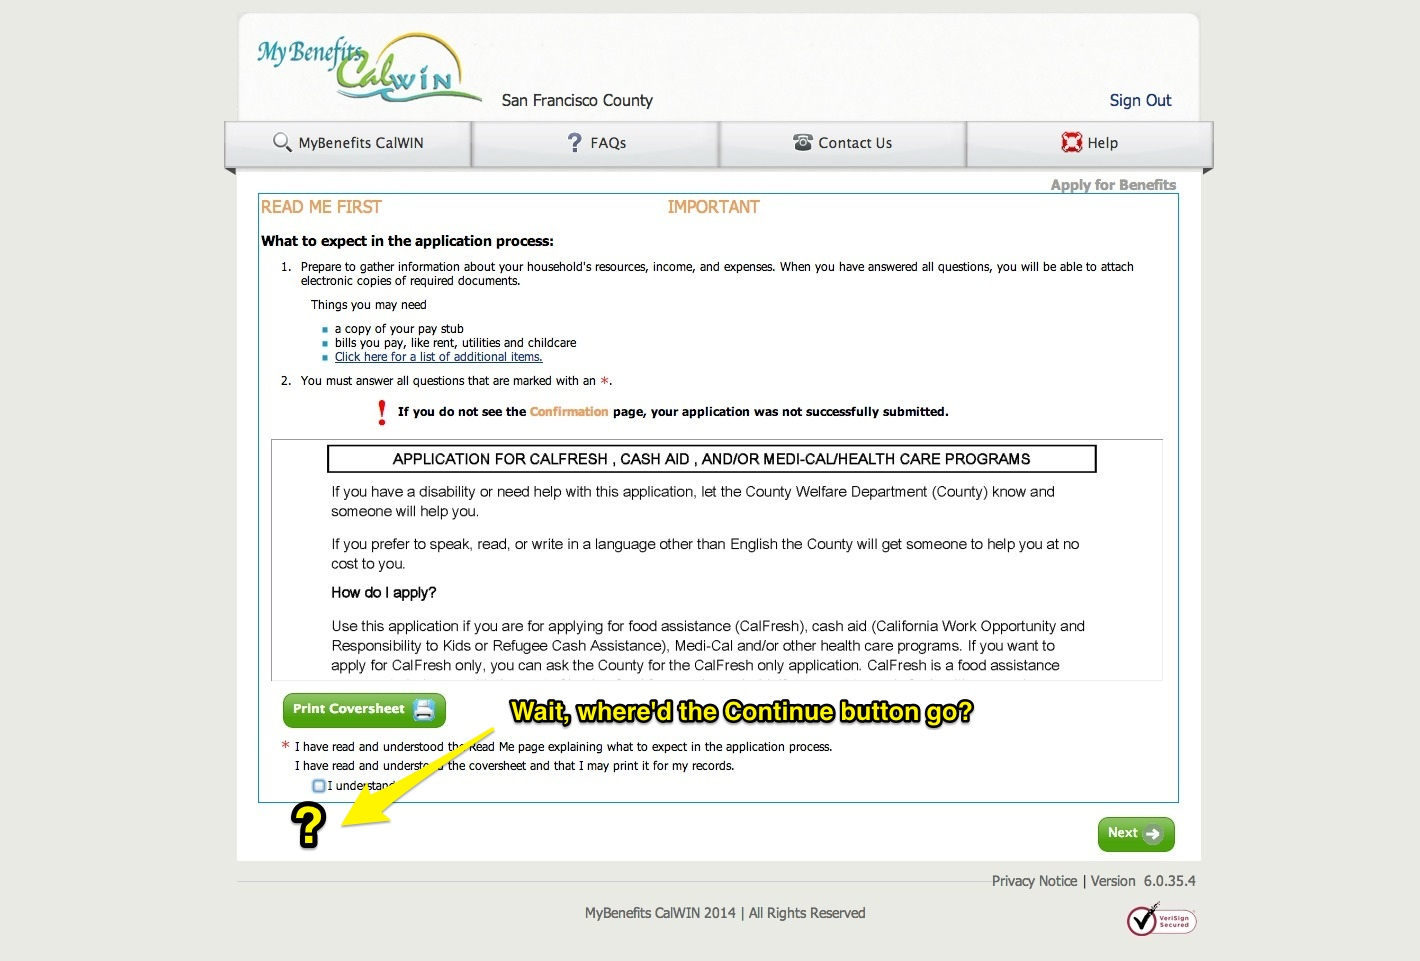 Calfresh Is California's Food Stamps Program Residents In 18 Counties Can  Apply For Calfresh Online Through